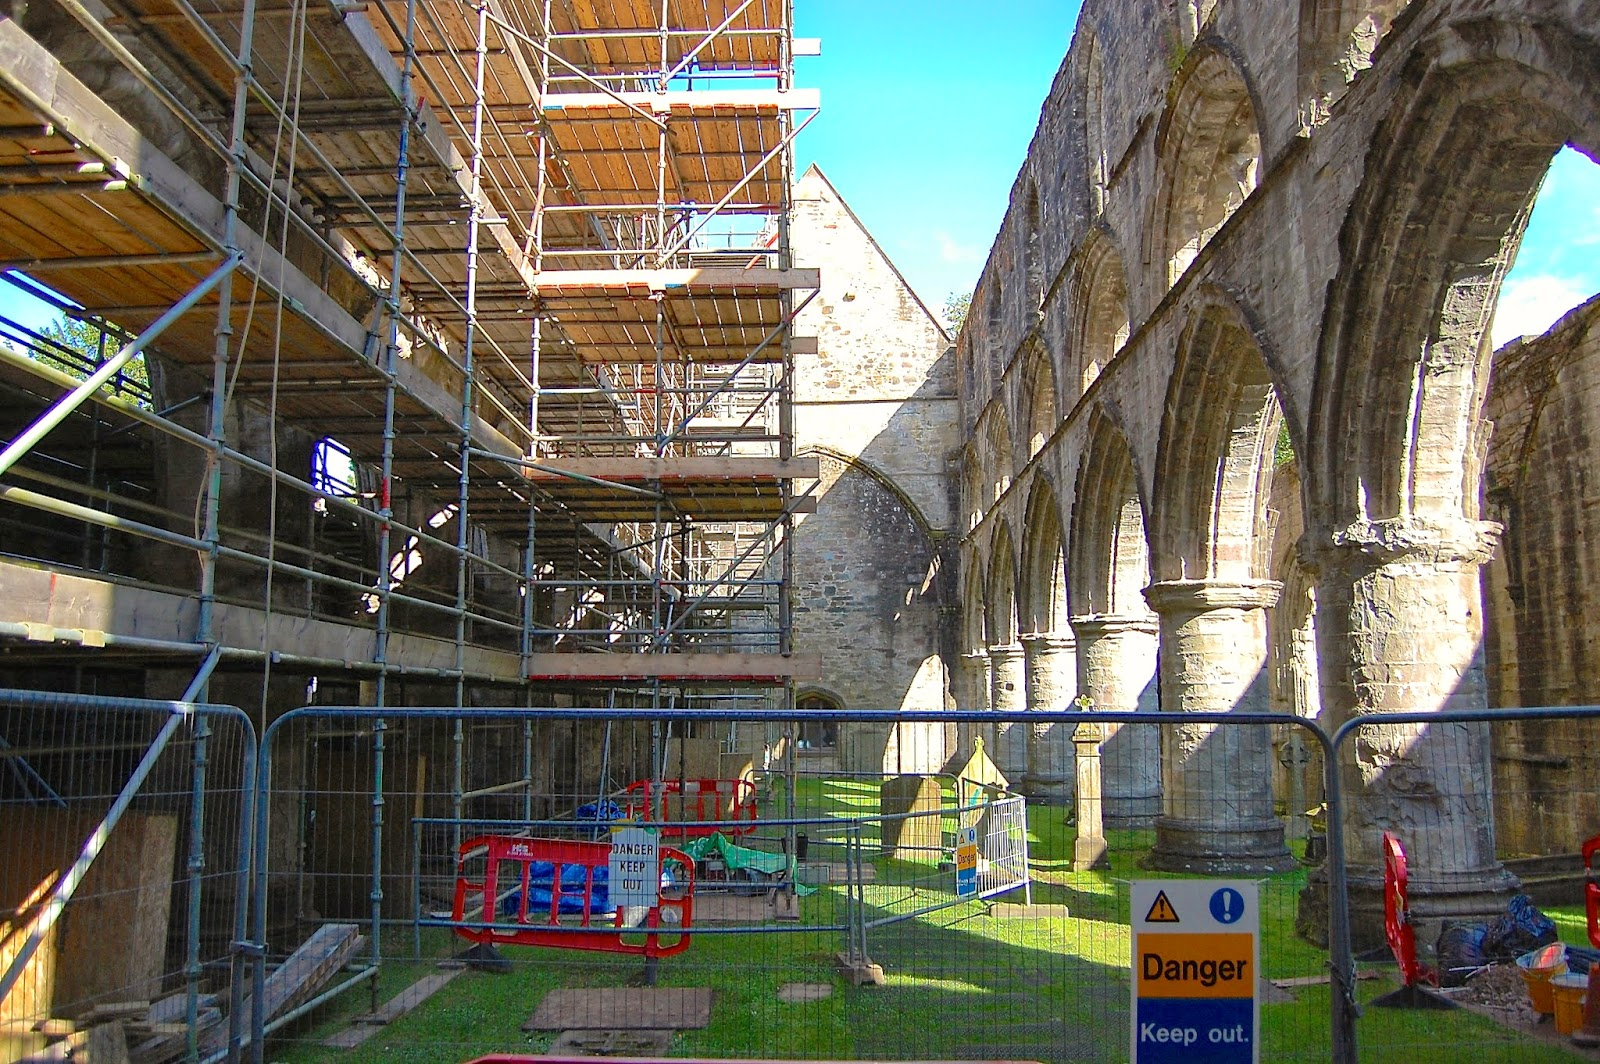 Ongoing repairs at Dunkeld Cathedral prevents access